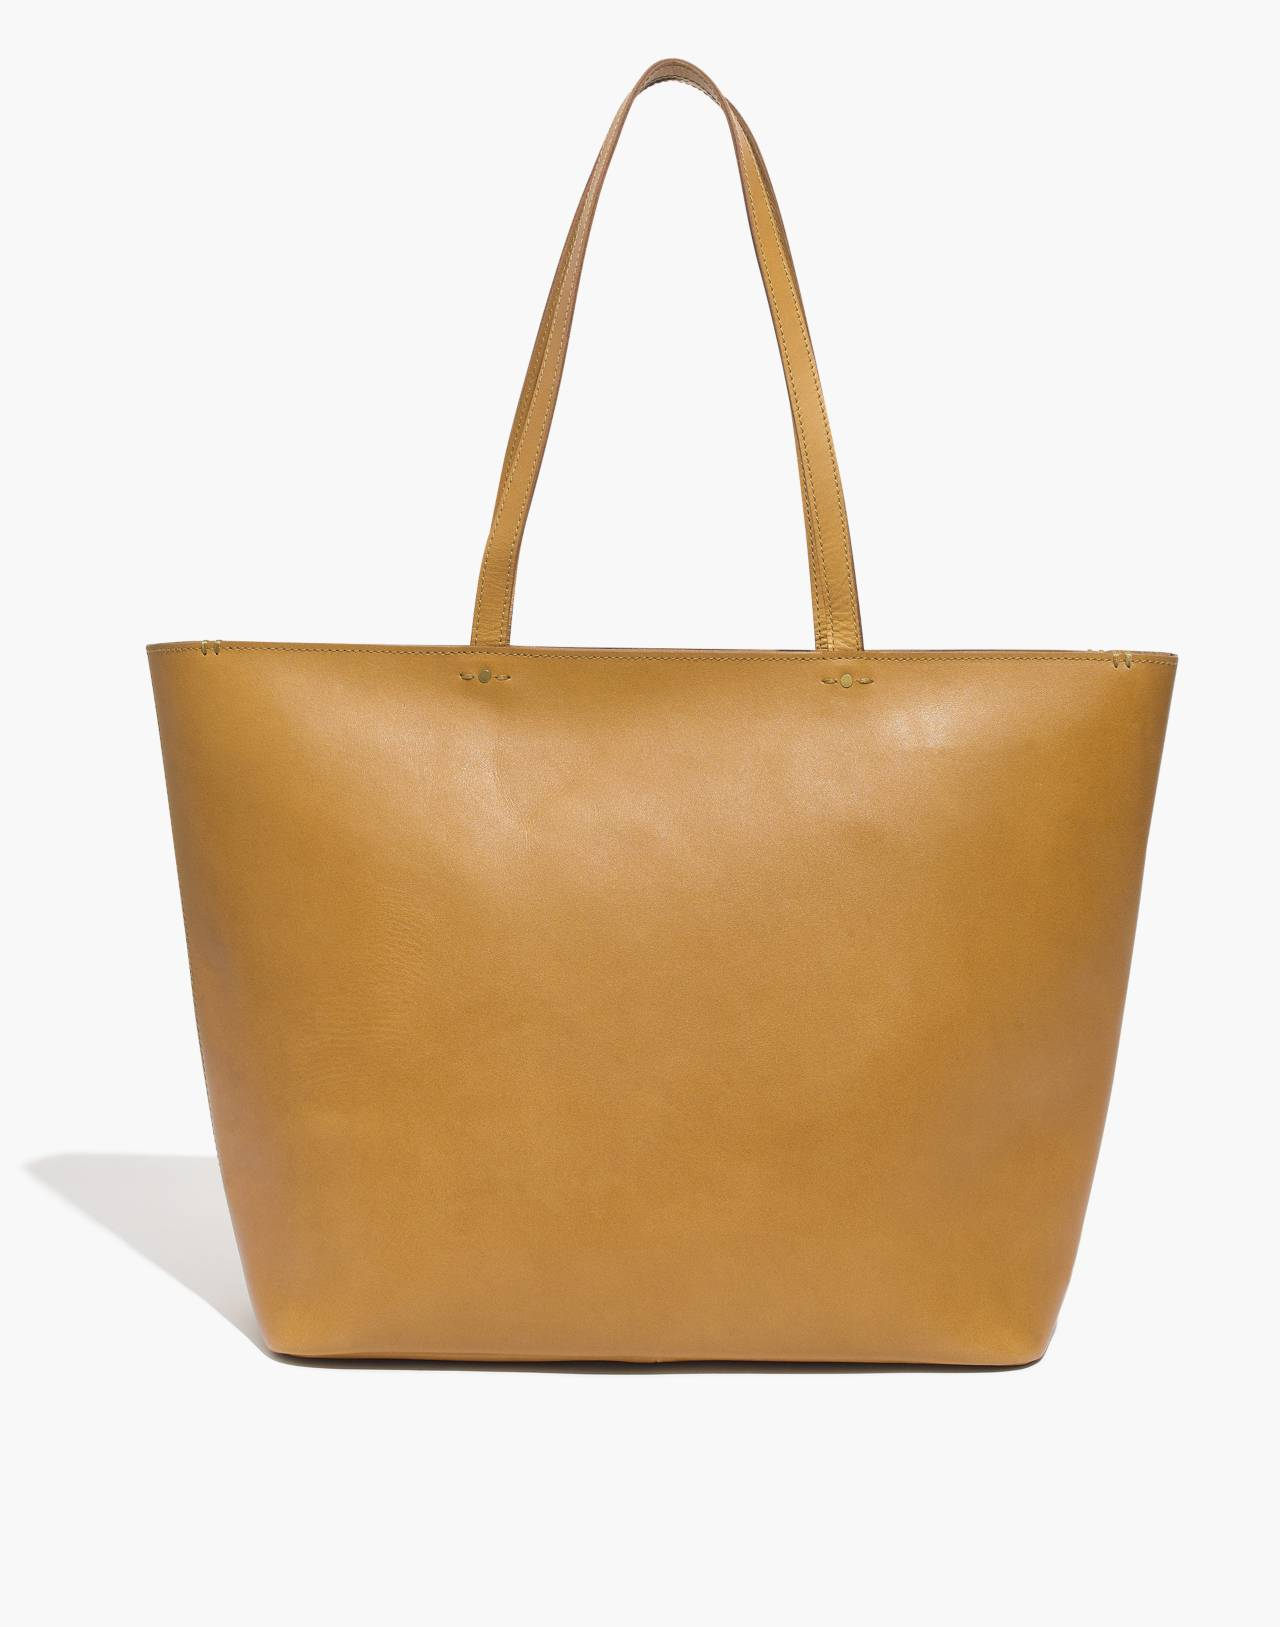 The Abroad Tote Bag in distant olive image 1